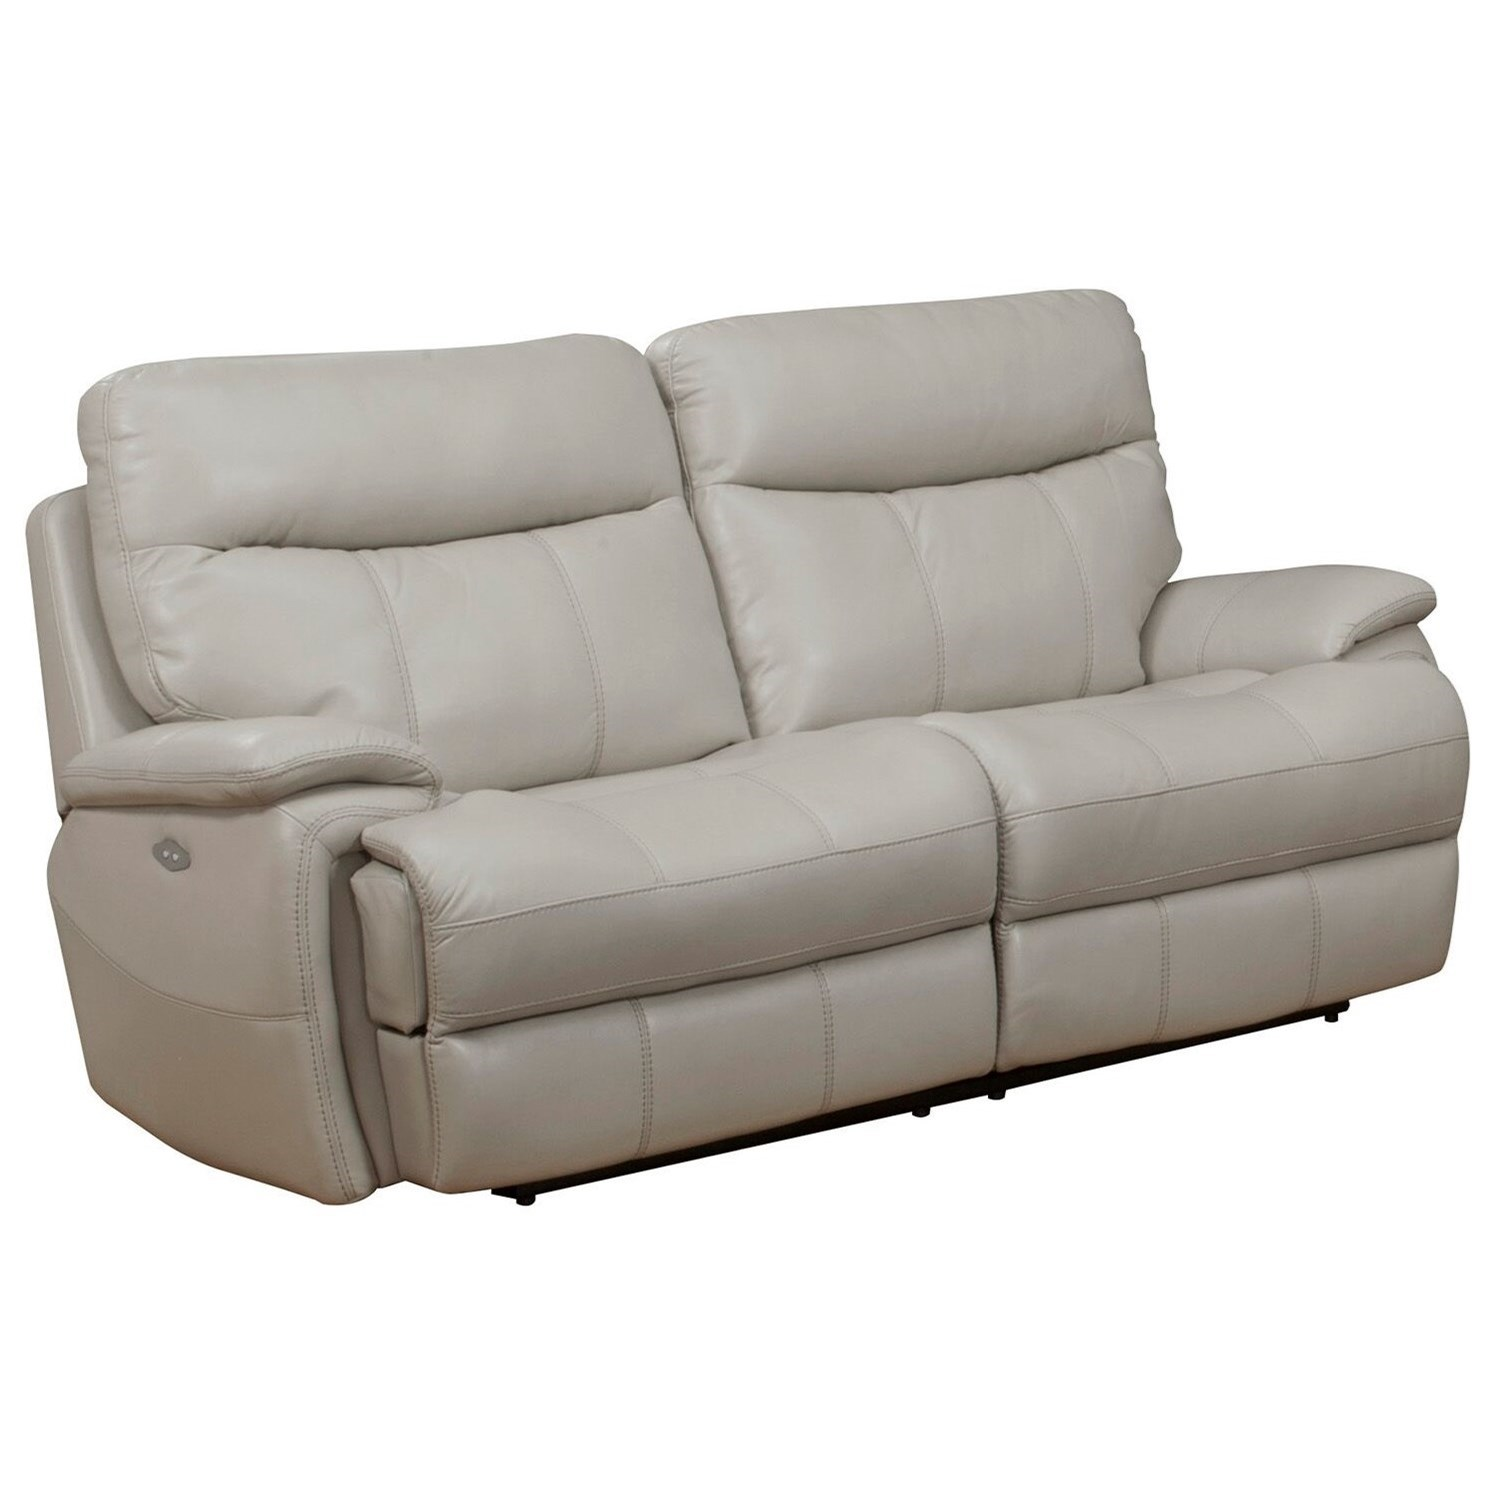 parker sofa and loveseat throw blankets amazon living dylan dual reclining two cushion with